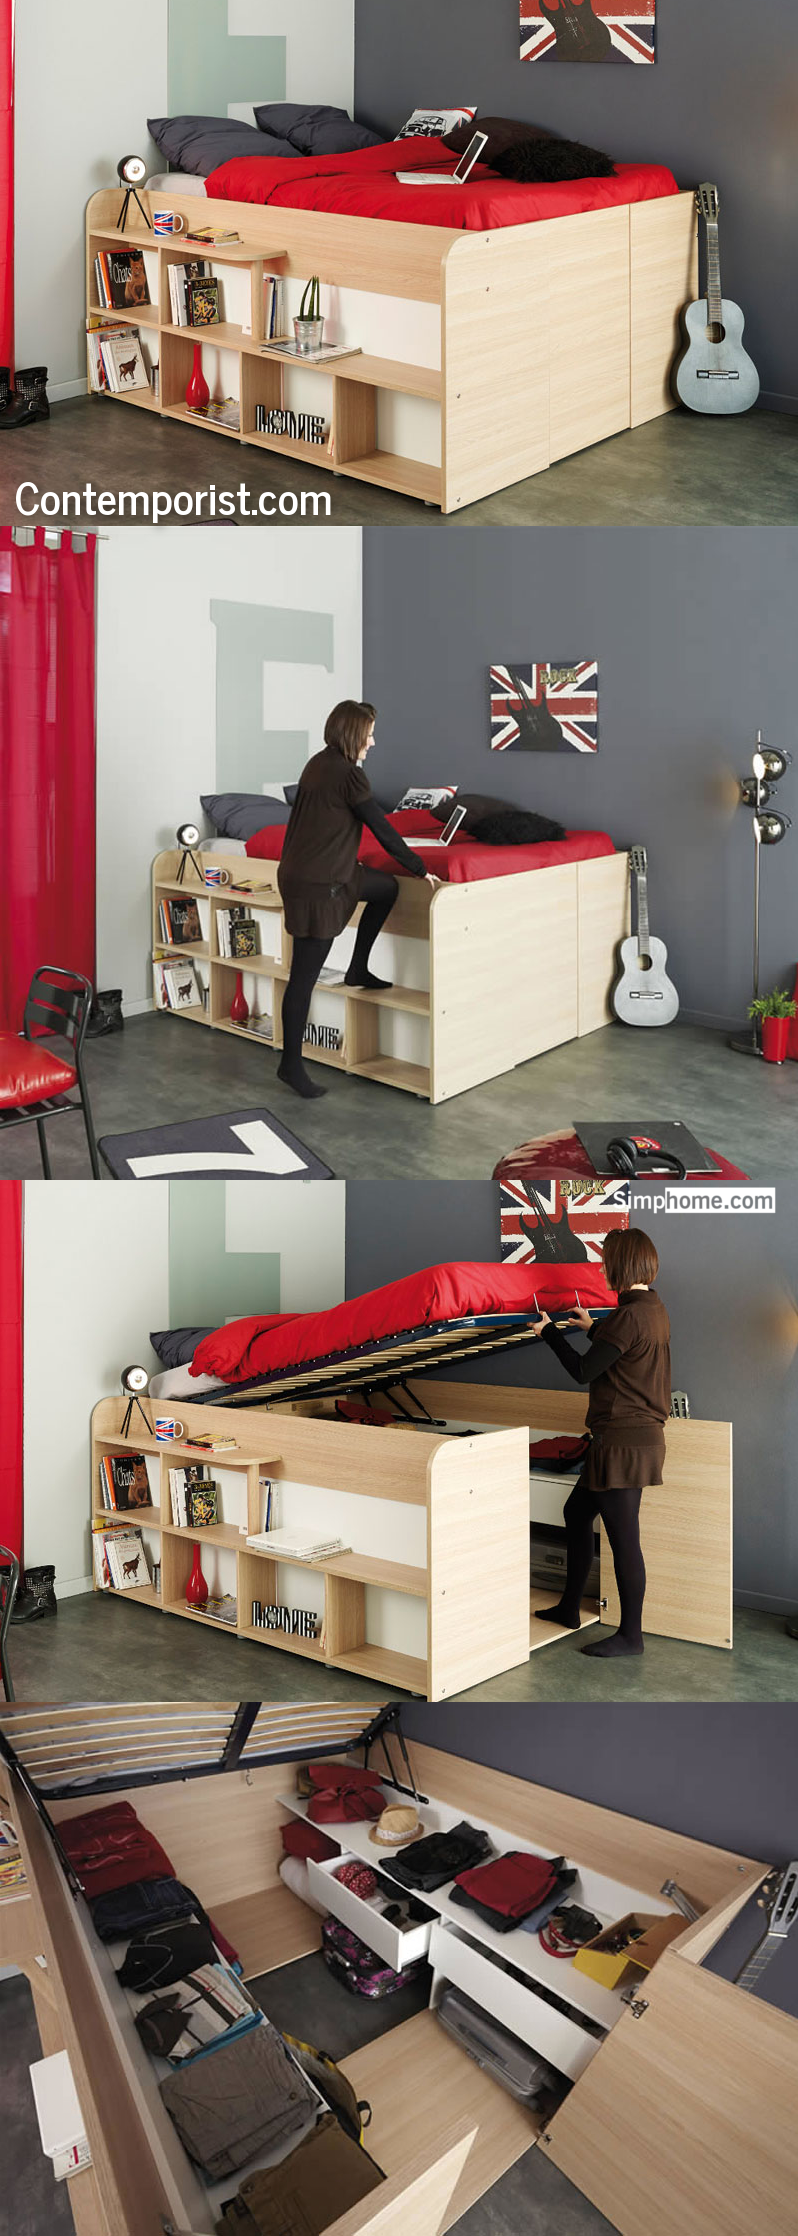 Bed and closet combination Simphome com 8